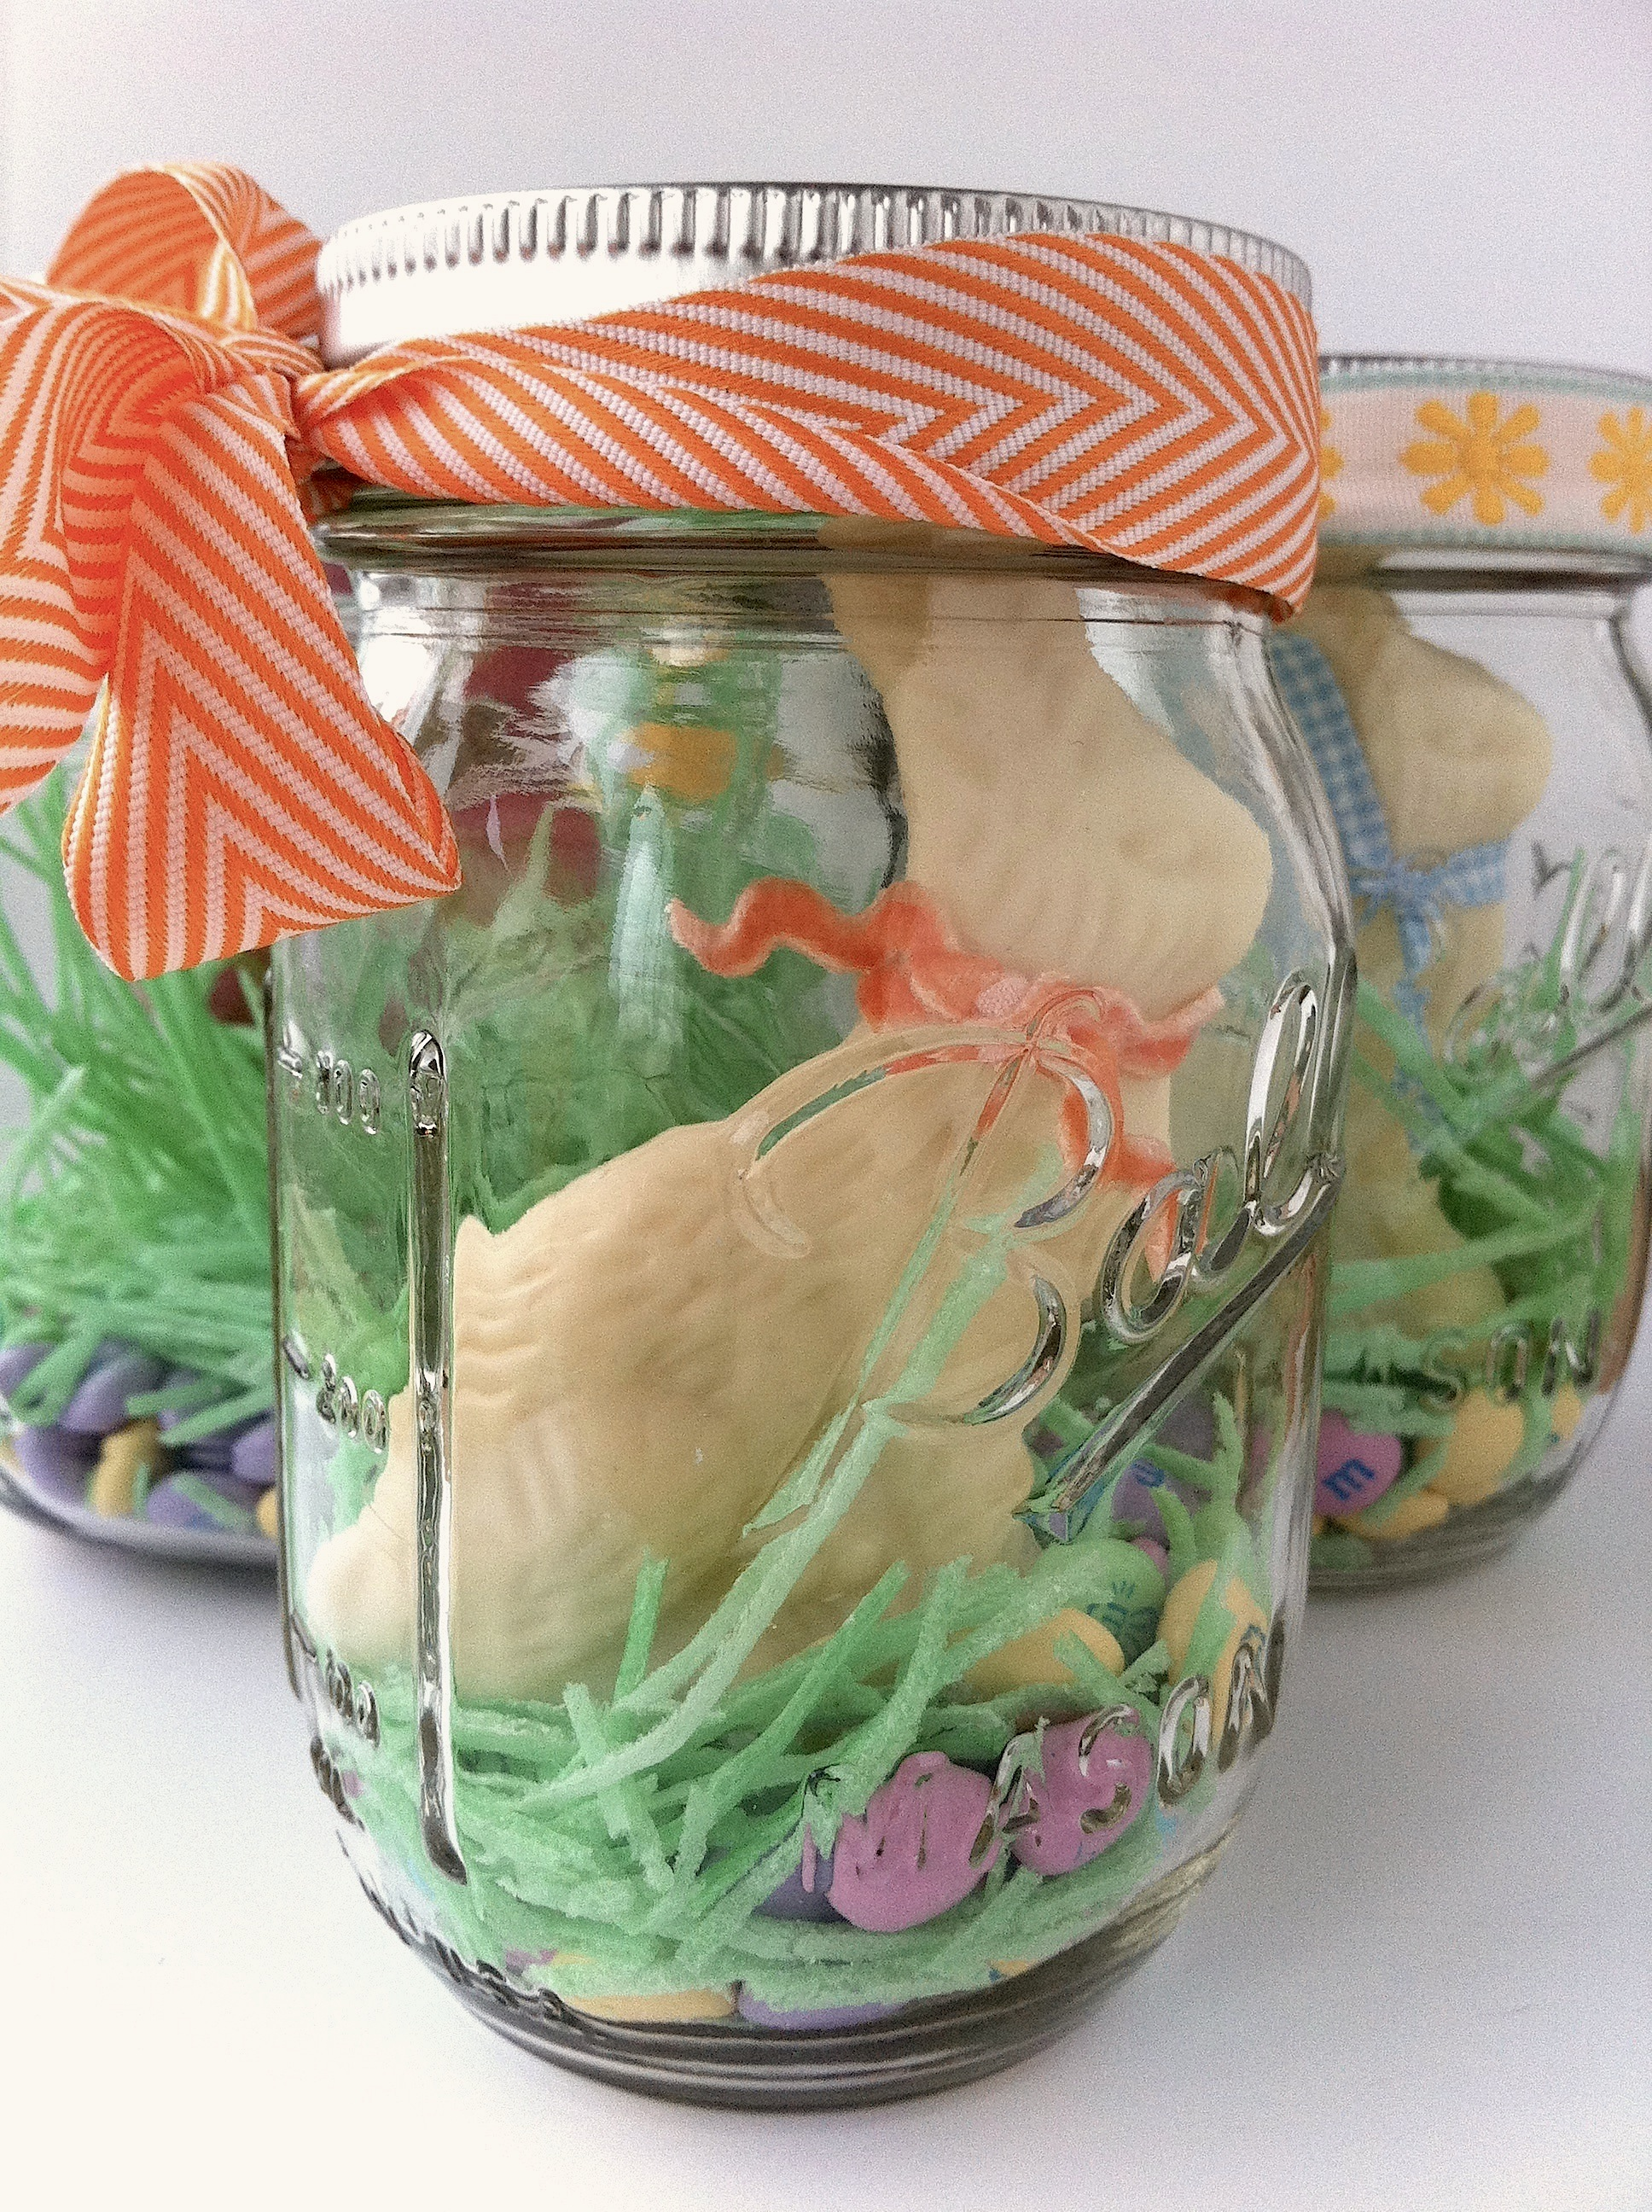 I Am Loving This Sweet And Incredibly Simple Easter Craft Just Discovered In My New Martha Stewarts Handmade Holiday Crafts Book